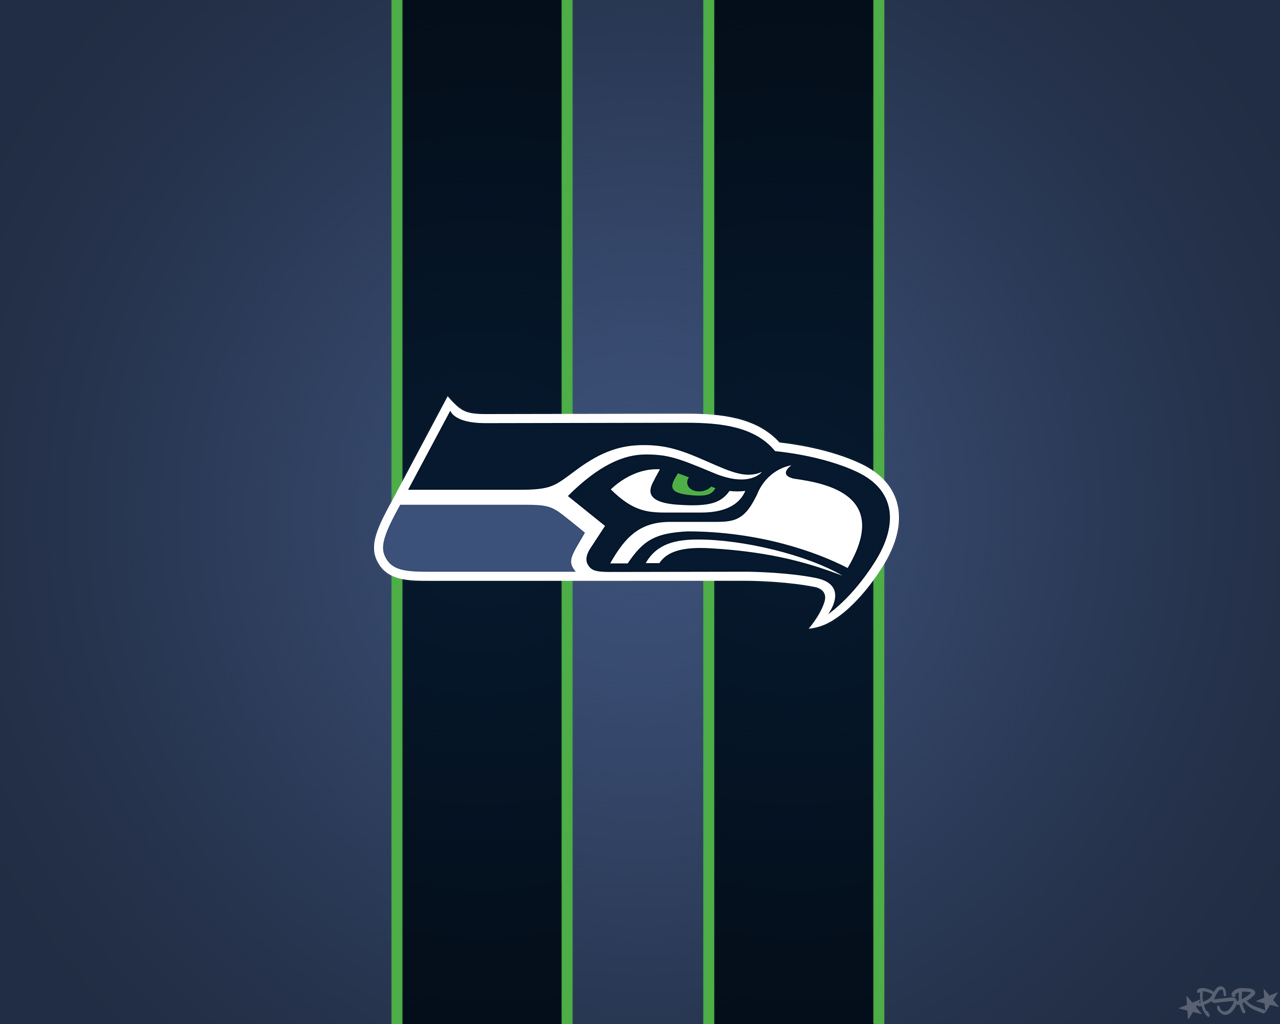 Enchanting Seattle Seahawks Wallpapers 1280x1024px